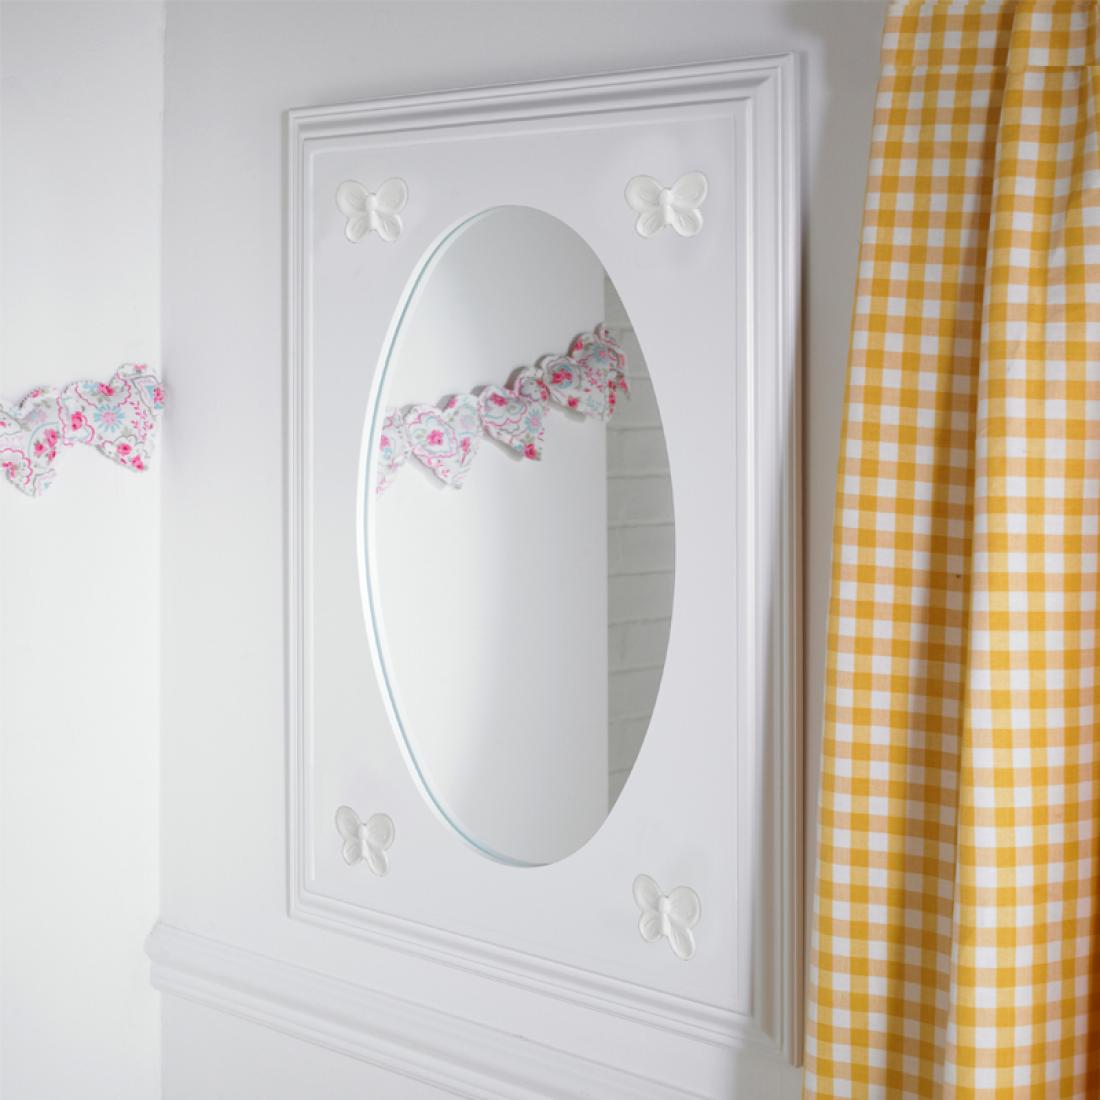 Florence flutterby childrens wall mirror childrens for Mirrors for kids rooms